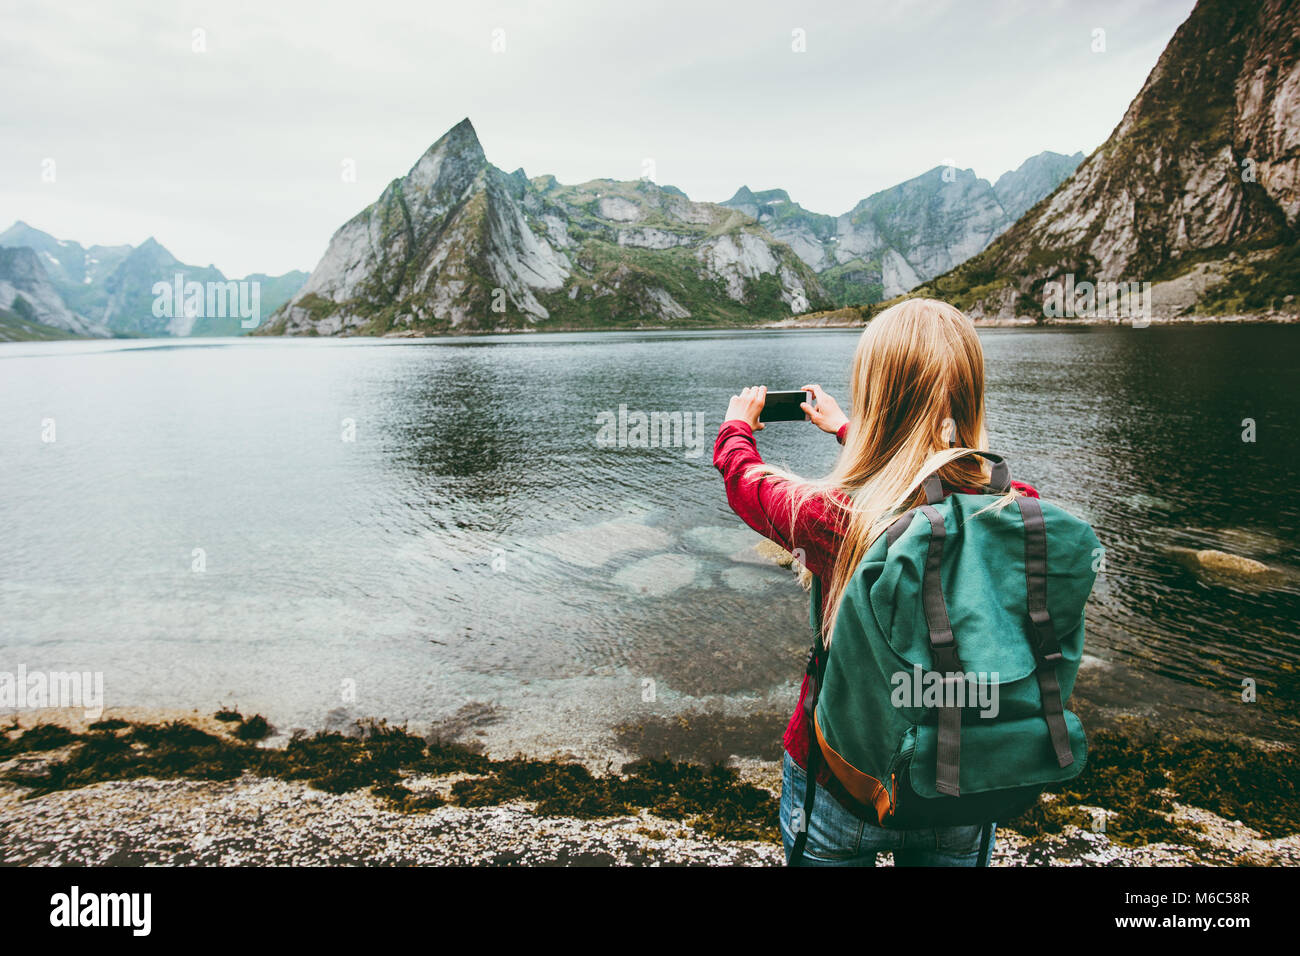 Girl tourist taking photo by smartphone sightseeing Lofoten islands Travel lifestyle wanderlust concept adventure - Stock Image